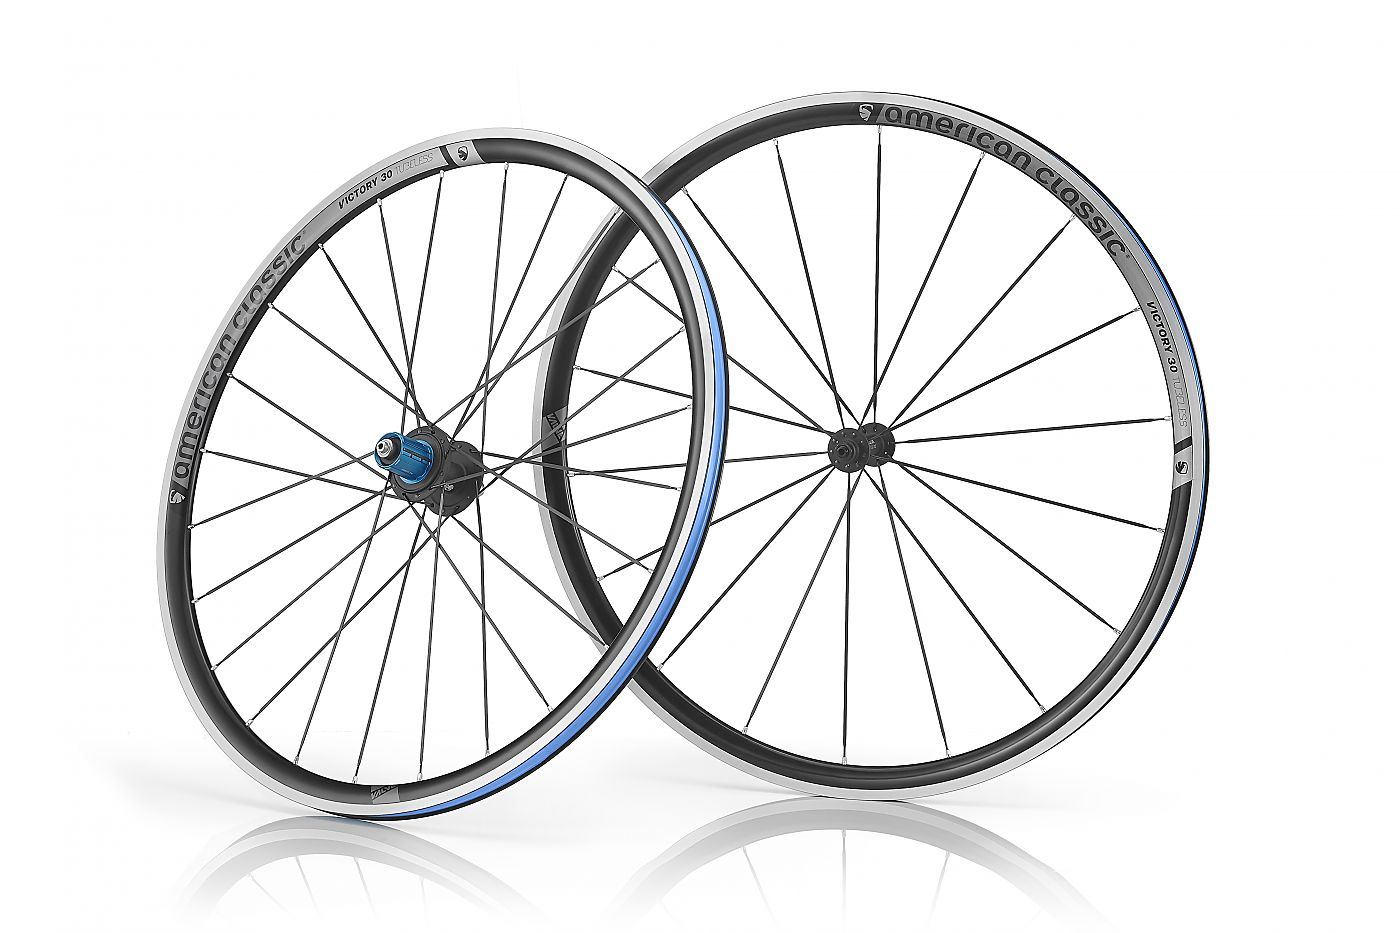 American Classic introduces Victory 30 wheels for gravel